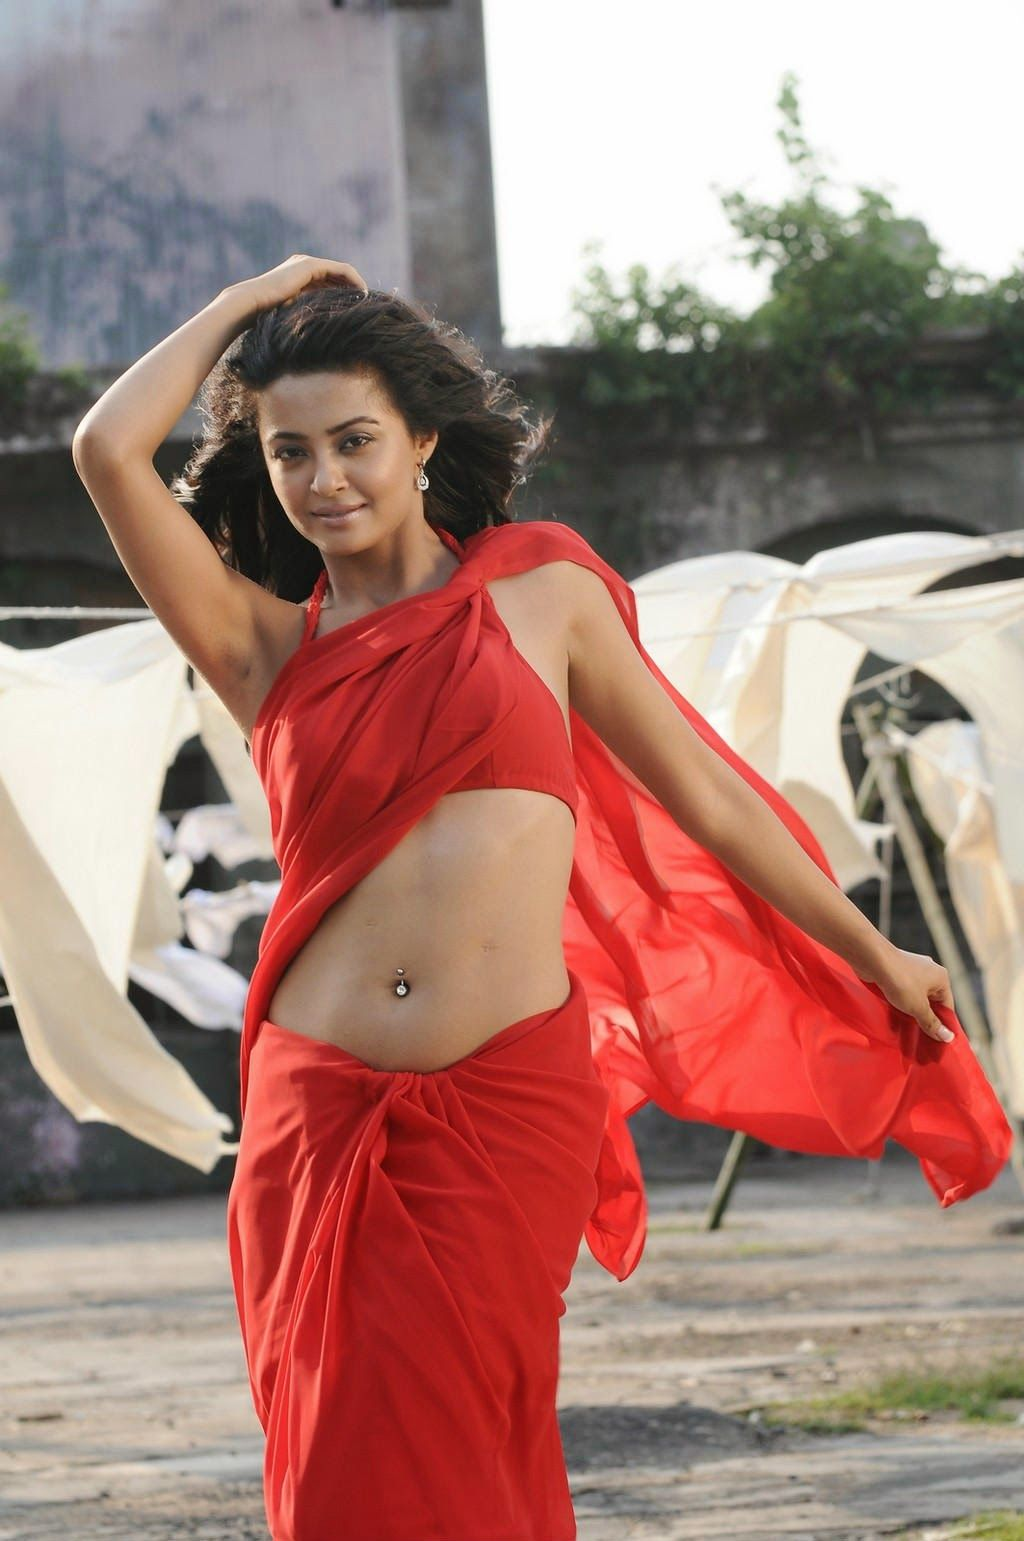 Actress Surveen Chawla spicy photo-shoot in red saree. View more ...